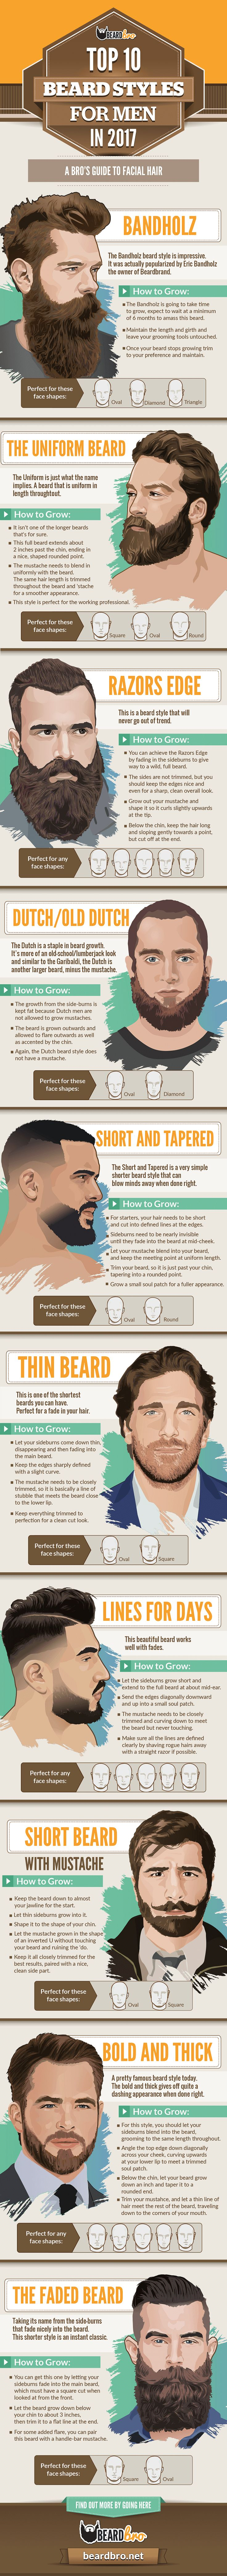 Seeing as I don't grow facial hair this isn't necessarily a need to know thing for me but I found it interesting and didn't know where to put it lol